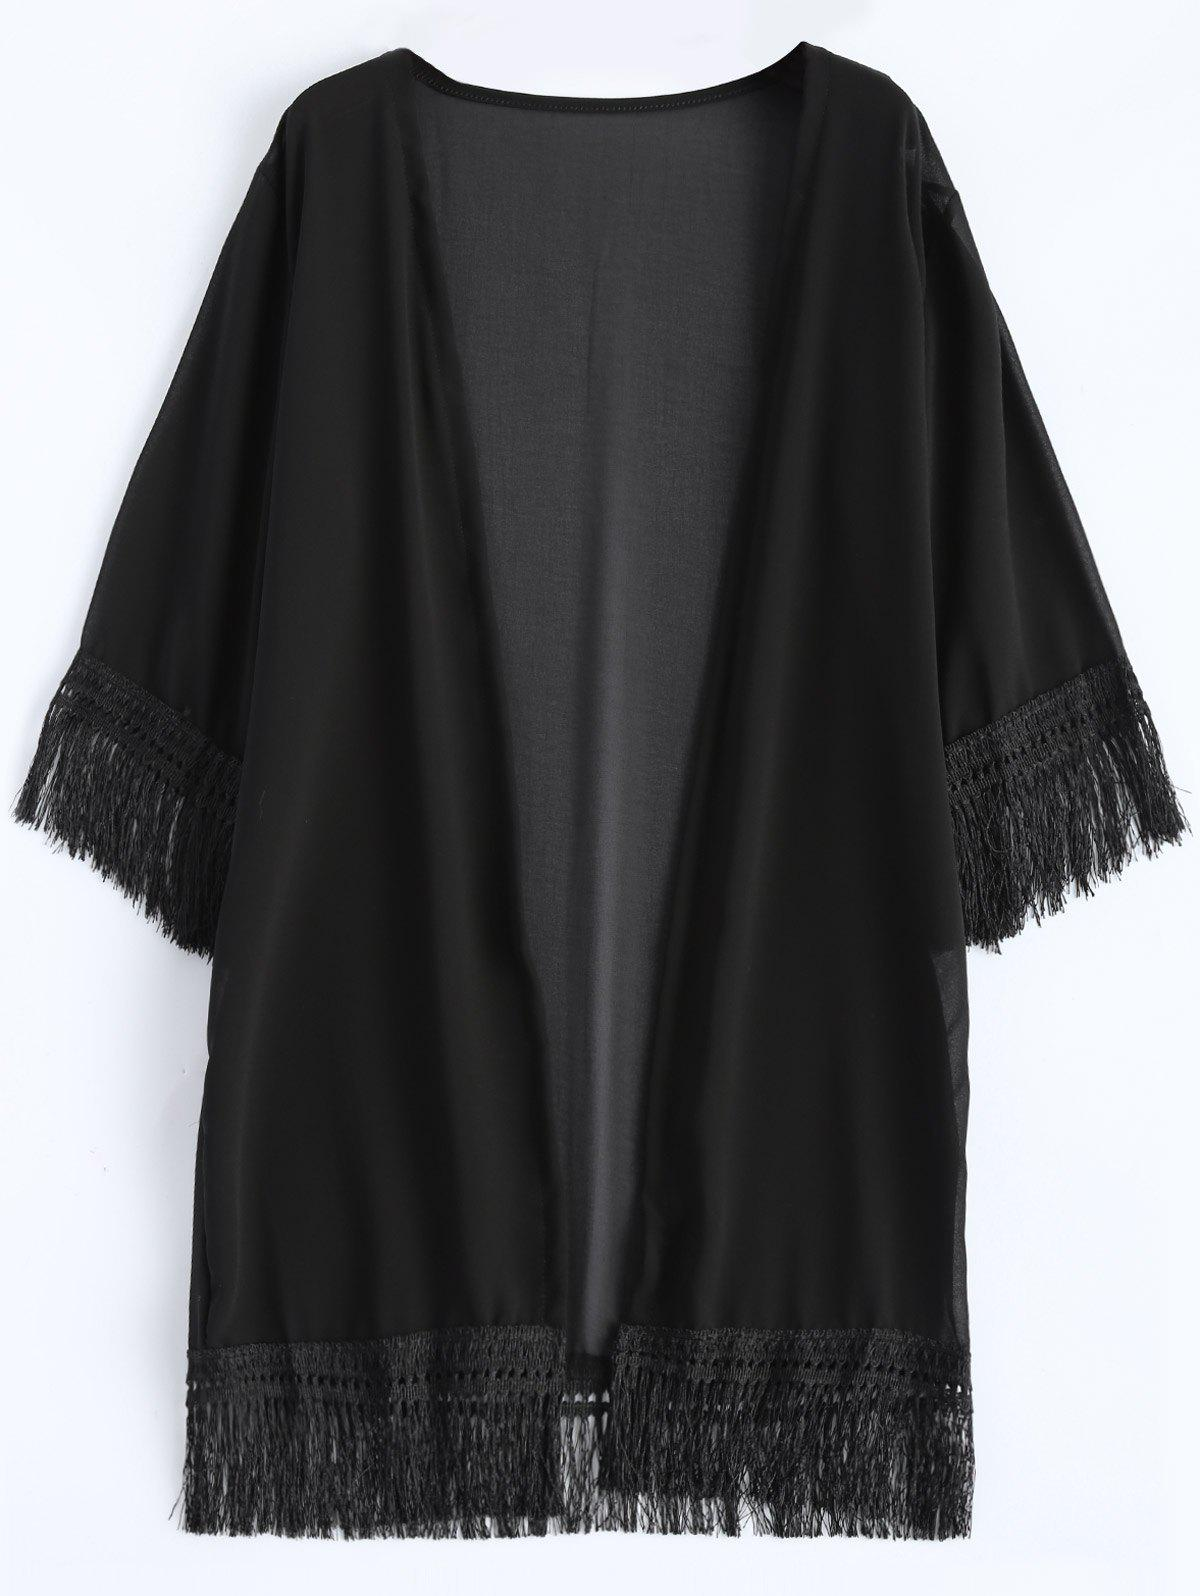 Fashion Chiffon Fringed Summer Cardigan Kimono Cover Up